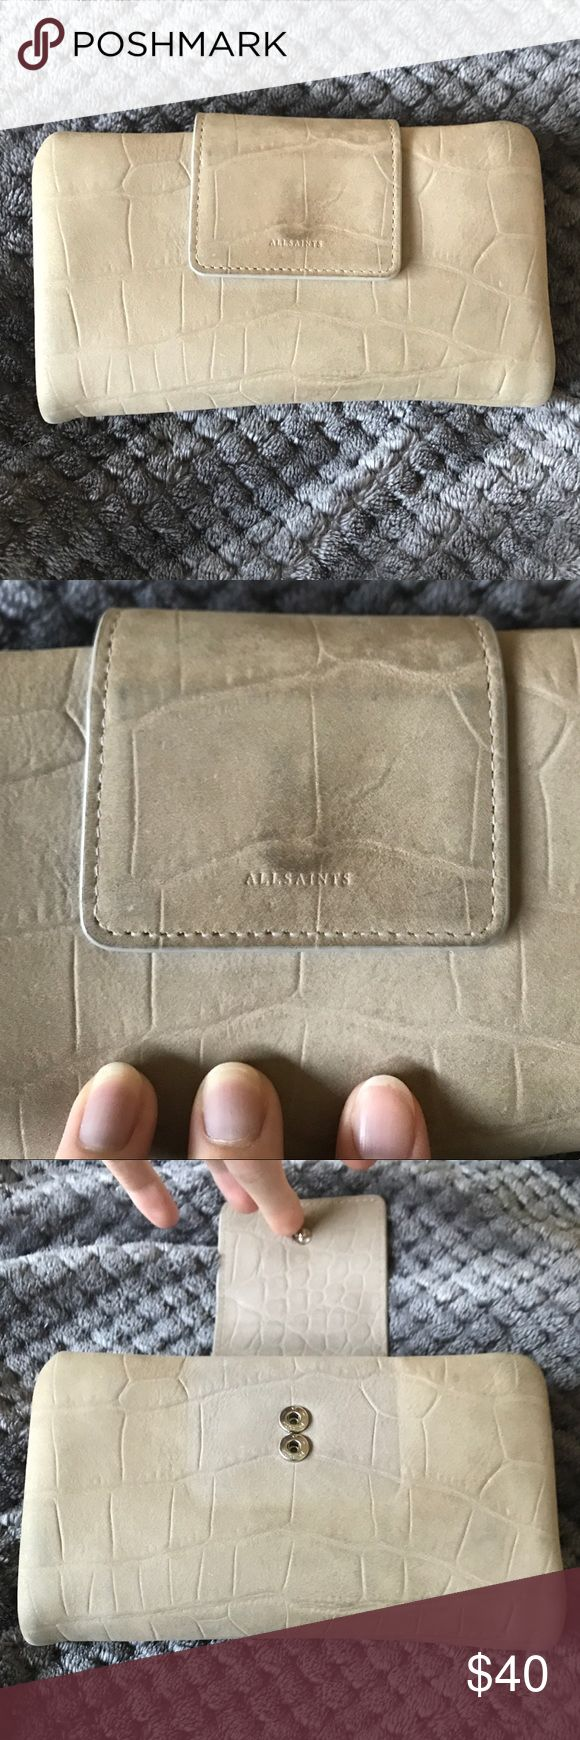 All Saints Paradise Wallet Taupe pebbled suede bi-fold with detachable coin wristlet for a more compact wallet. 9 card slots. Note the discoloration on the front near embossed logo and underneath the cover. Priced accordingly! No trades. Happy to answer any questions. Height: 10cm. Width: 18cm. All Saints Bags Wallets